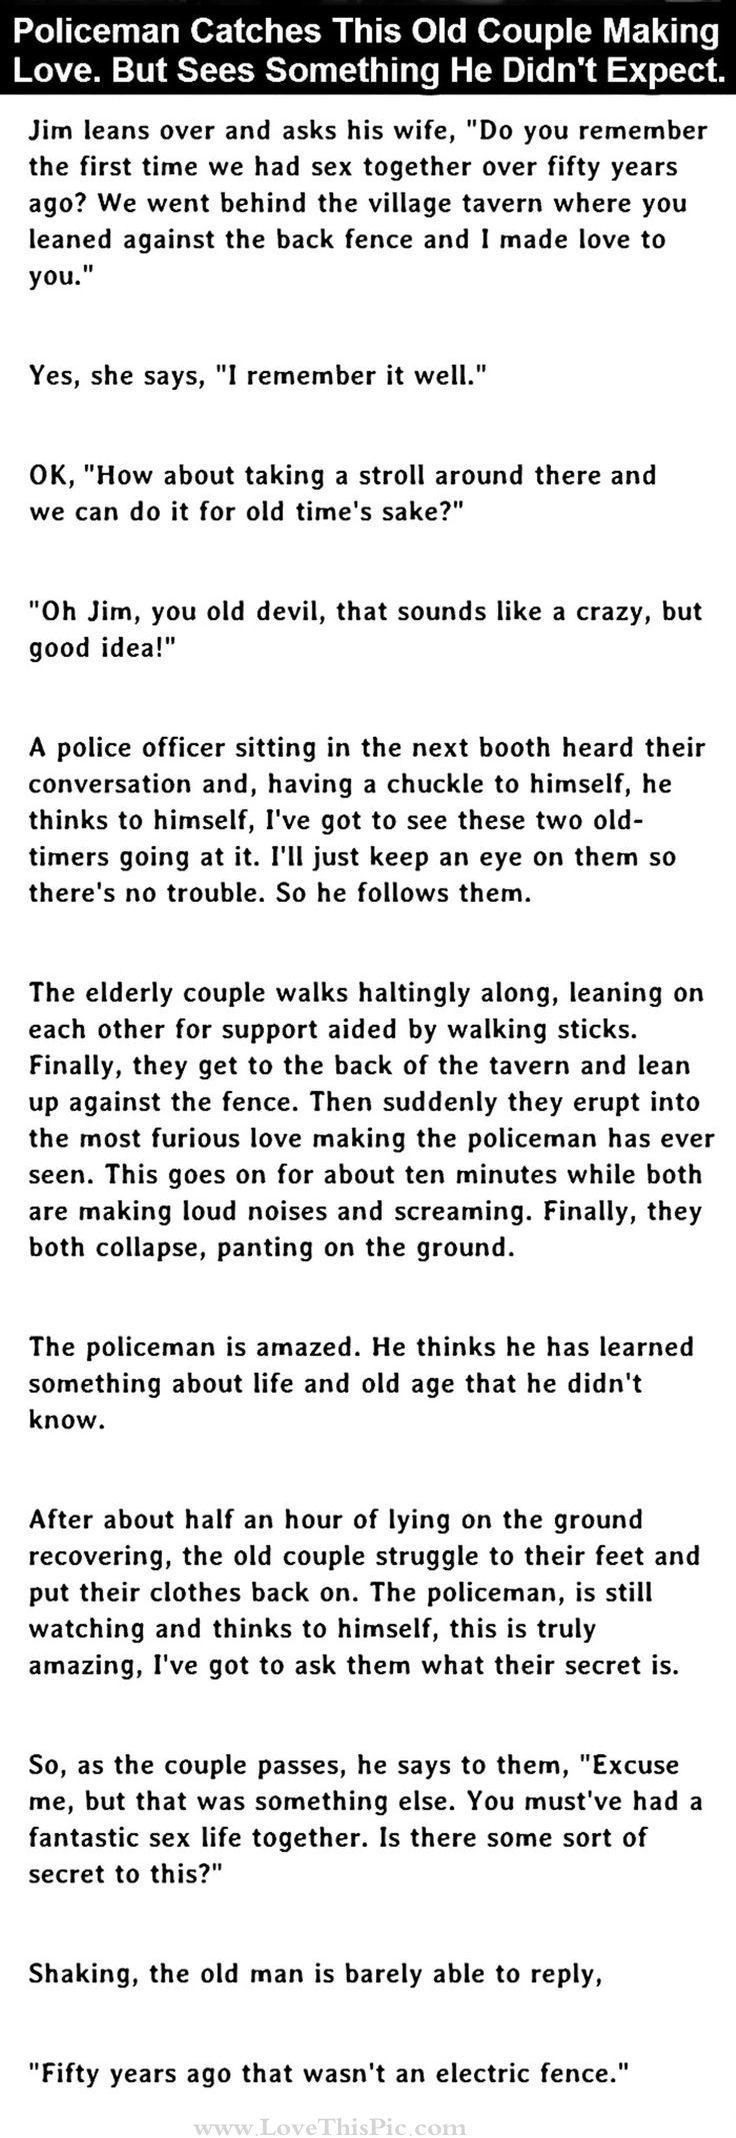 policeman catches old couple making love but he didn't expect this